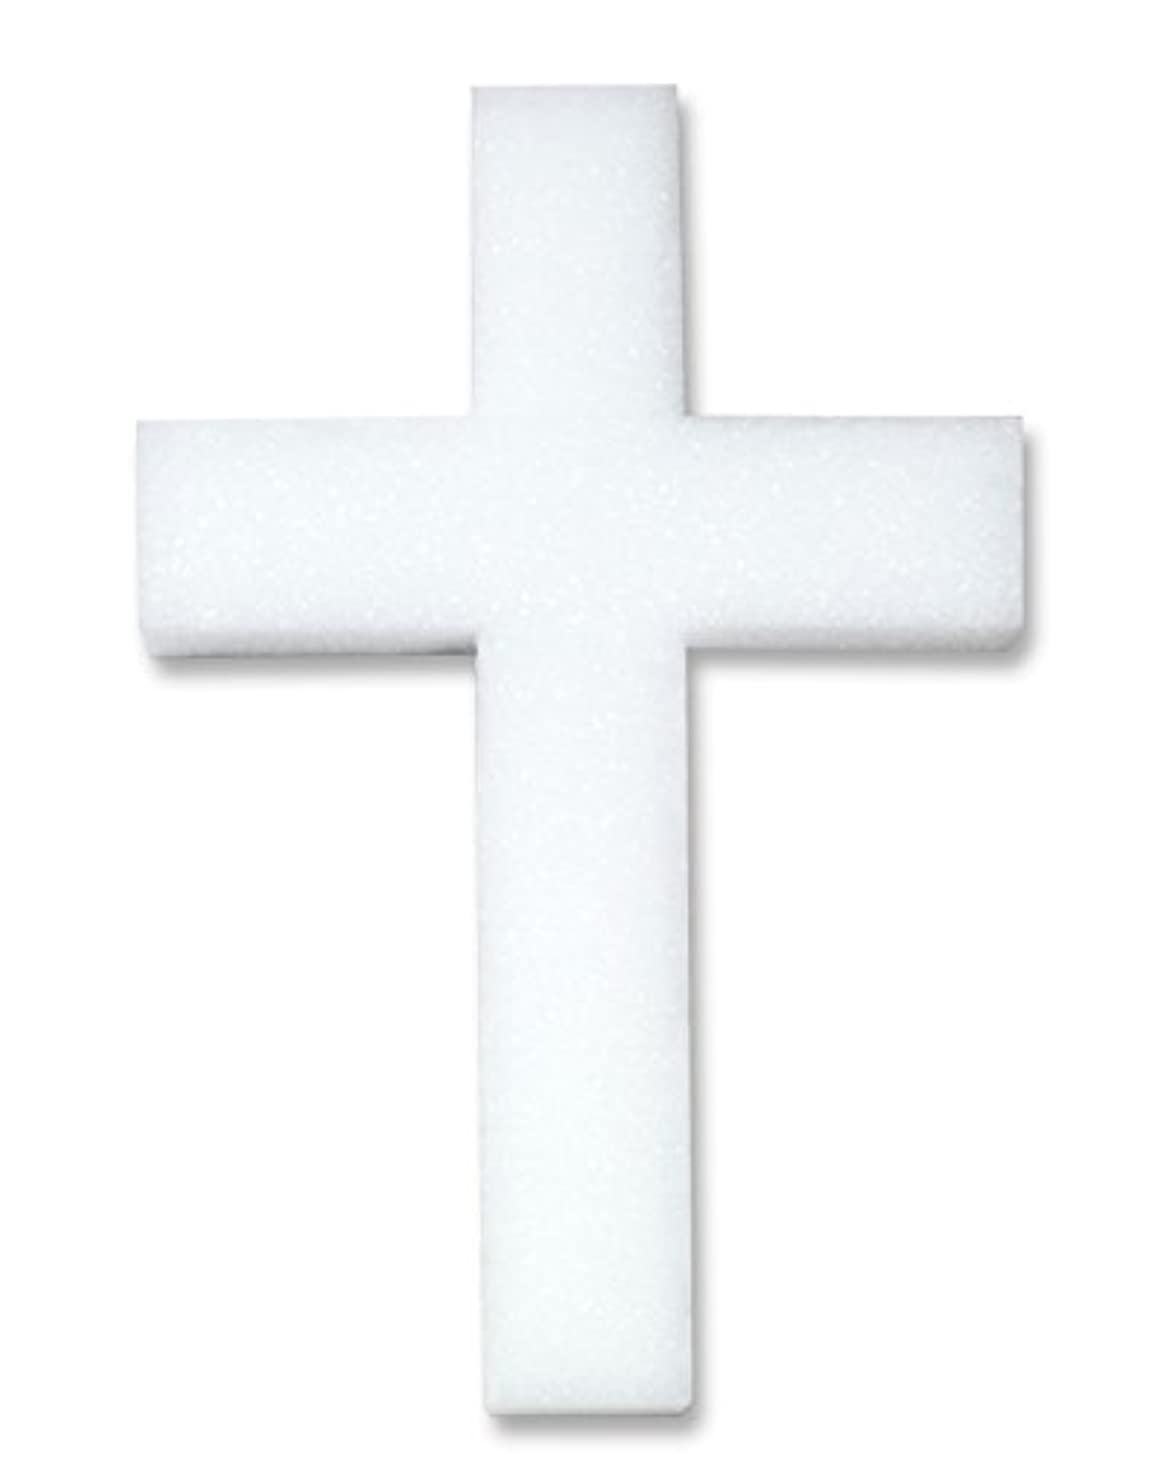 FloraCraft Styrofoam Unassembled Cross 1.8 Inch x 8 Inch x 12 Inch with 1.5 Inch Face White